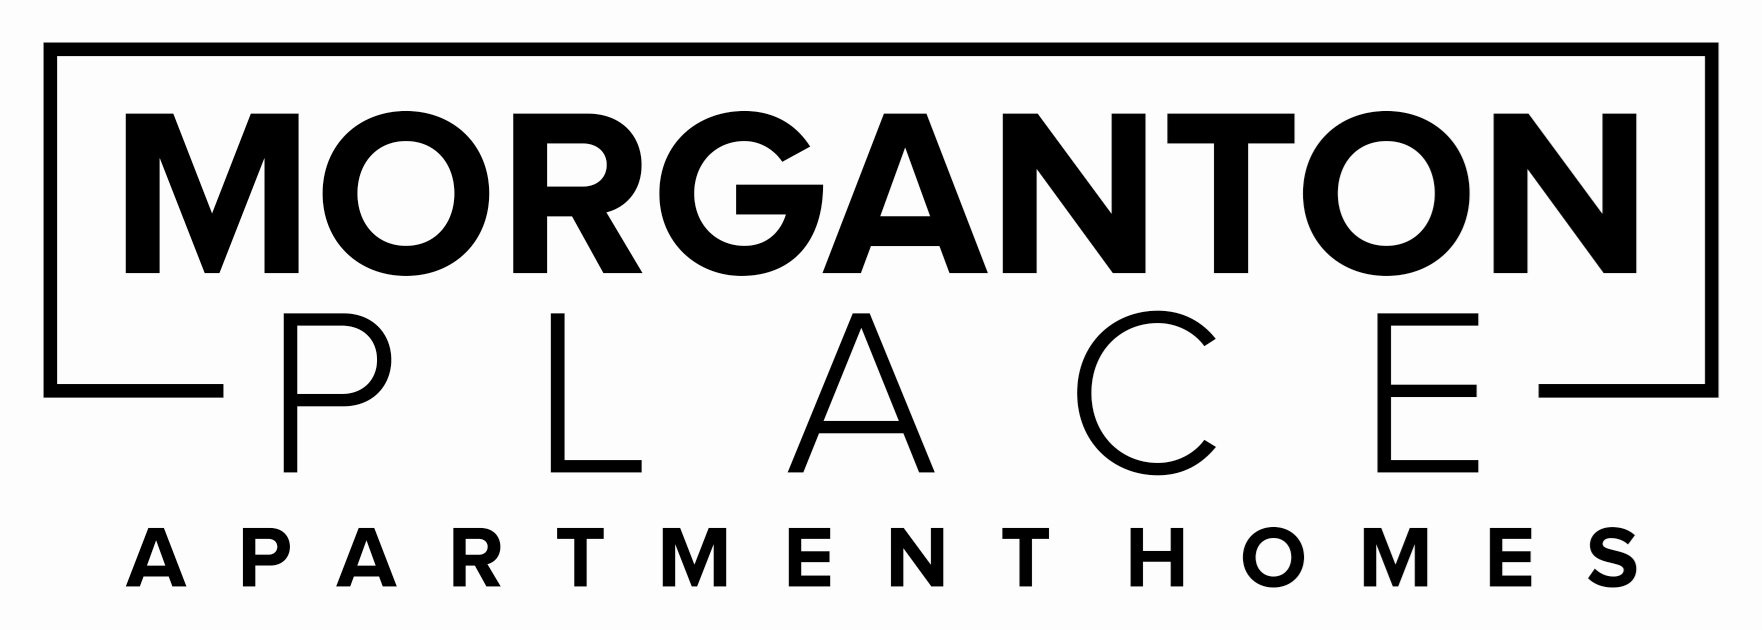 Morganton Place Apartments Property Logo 18